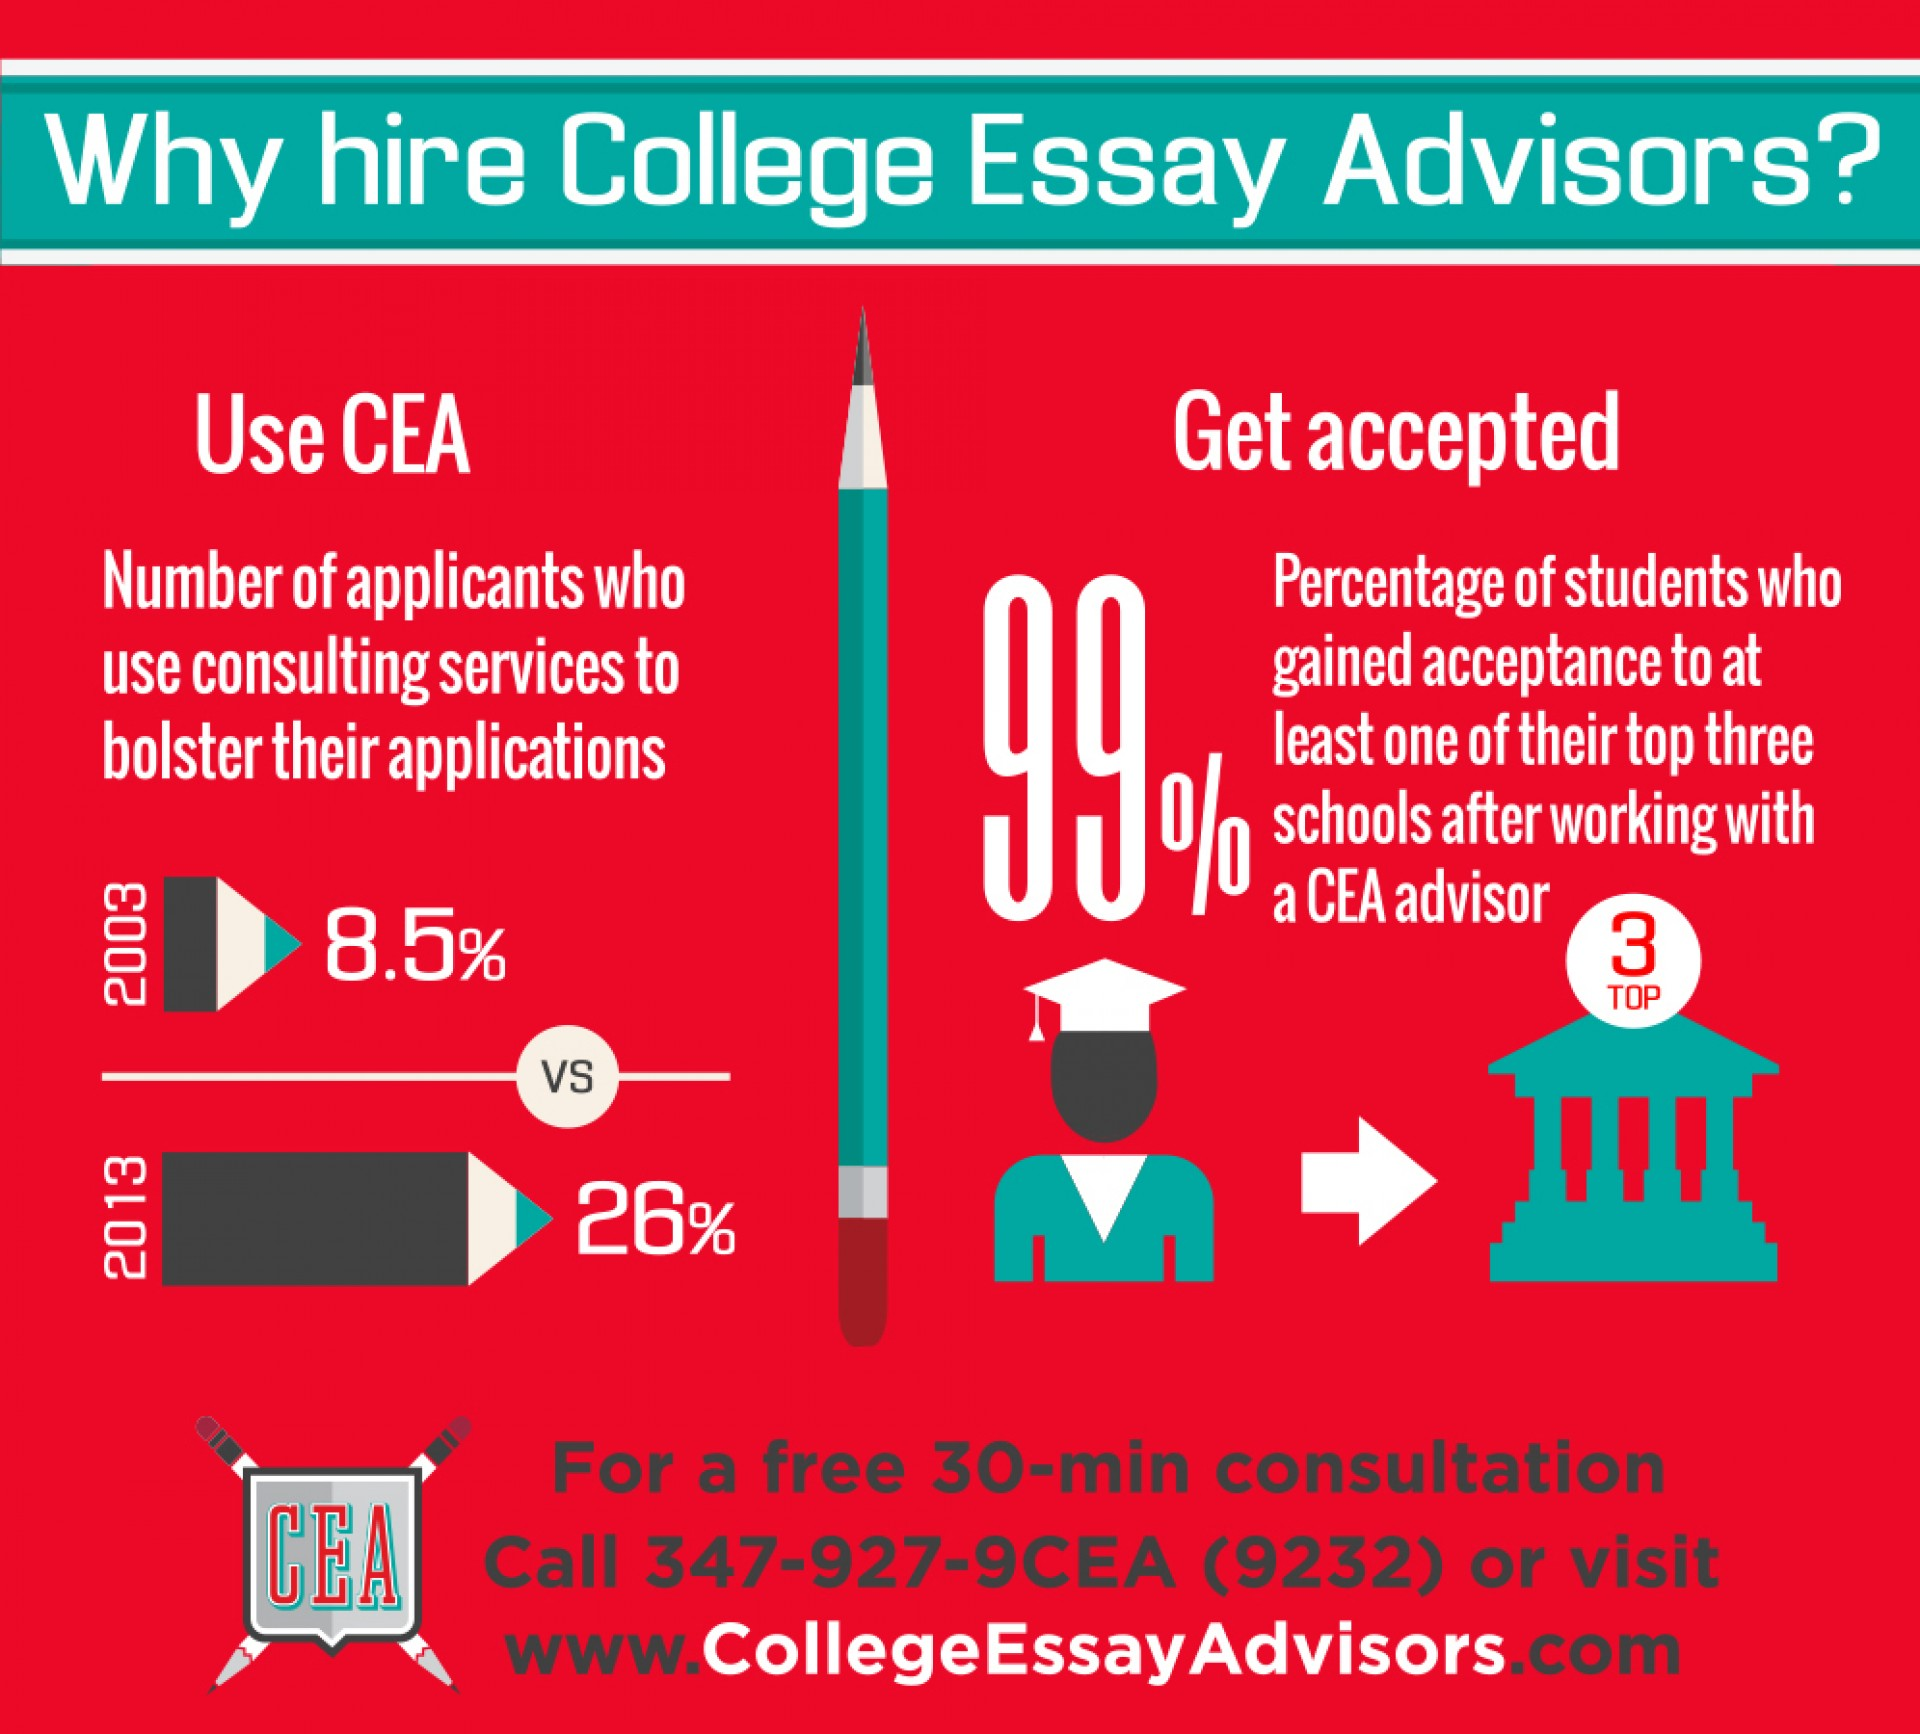 012 Essay Example College Advisors Why Hire Cea Nym Wondrous Upenn Duke Usc 1920